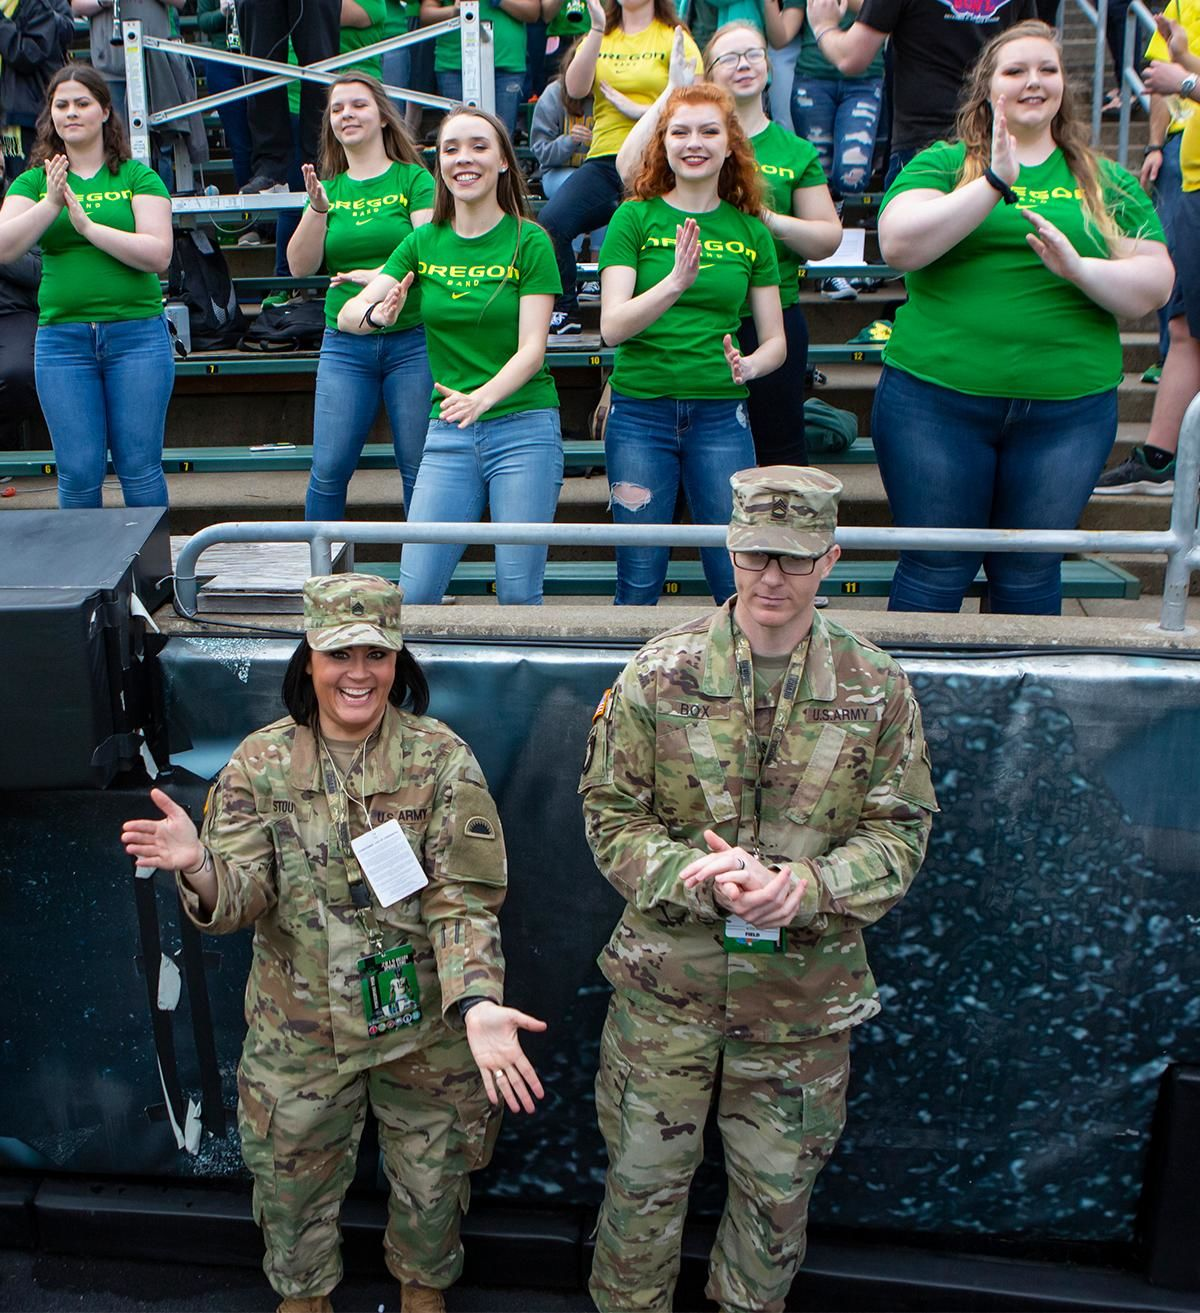 Service members dance alongside members of the Oregon Marching Band during Saturday's game. More than 35,000 fans turned out for the University of Oregon's annual spring football game. Mighty Oregon defeated the Fighting Ducks 20 to 13 during the Saturday afternoon game at Autzen Stadium in Eugene, Ore. on April 20, 2019. [Ben Lonergan for KVAL.com] - KVAL.com